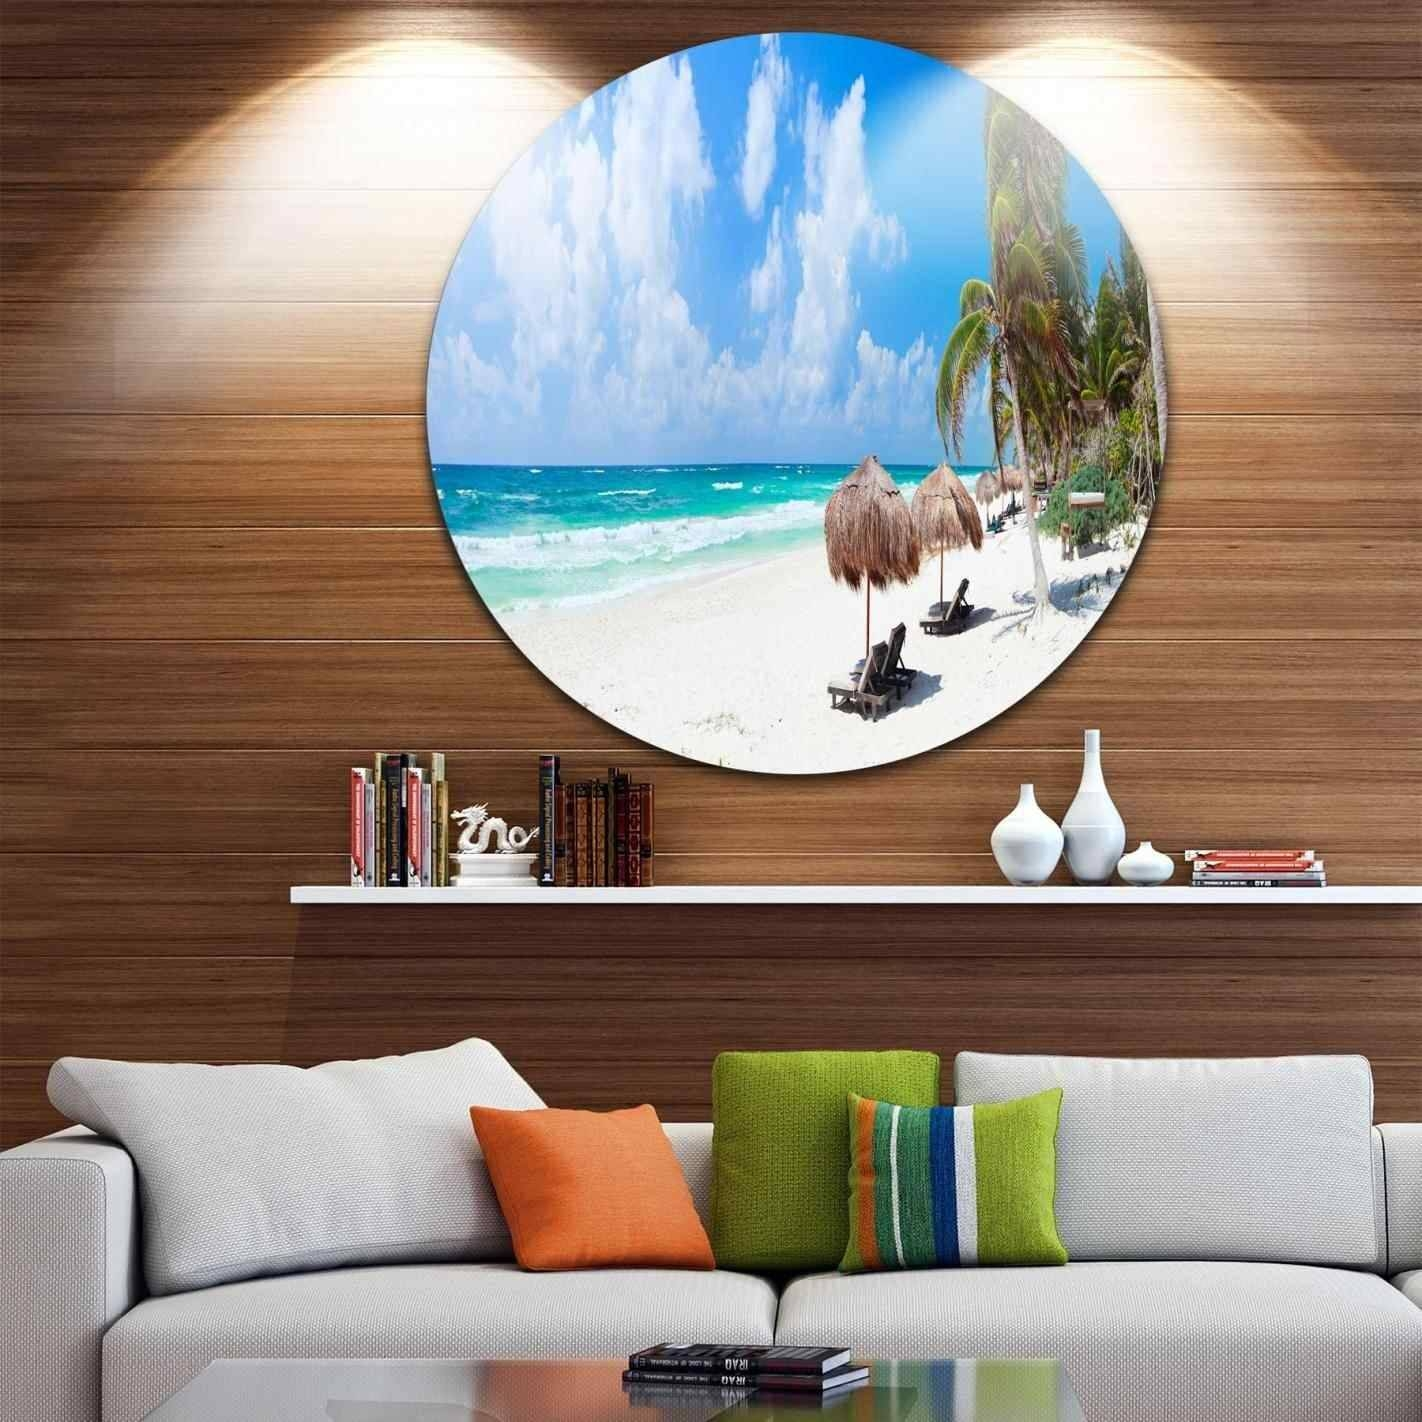 Caribbean Metal Wall Art | Home Interior Decor With Regard To 2018 Caribbean Metal Wall Art (View 5 of 20)